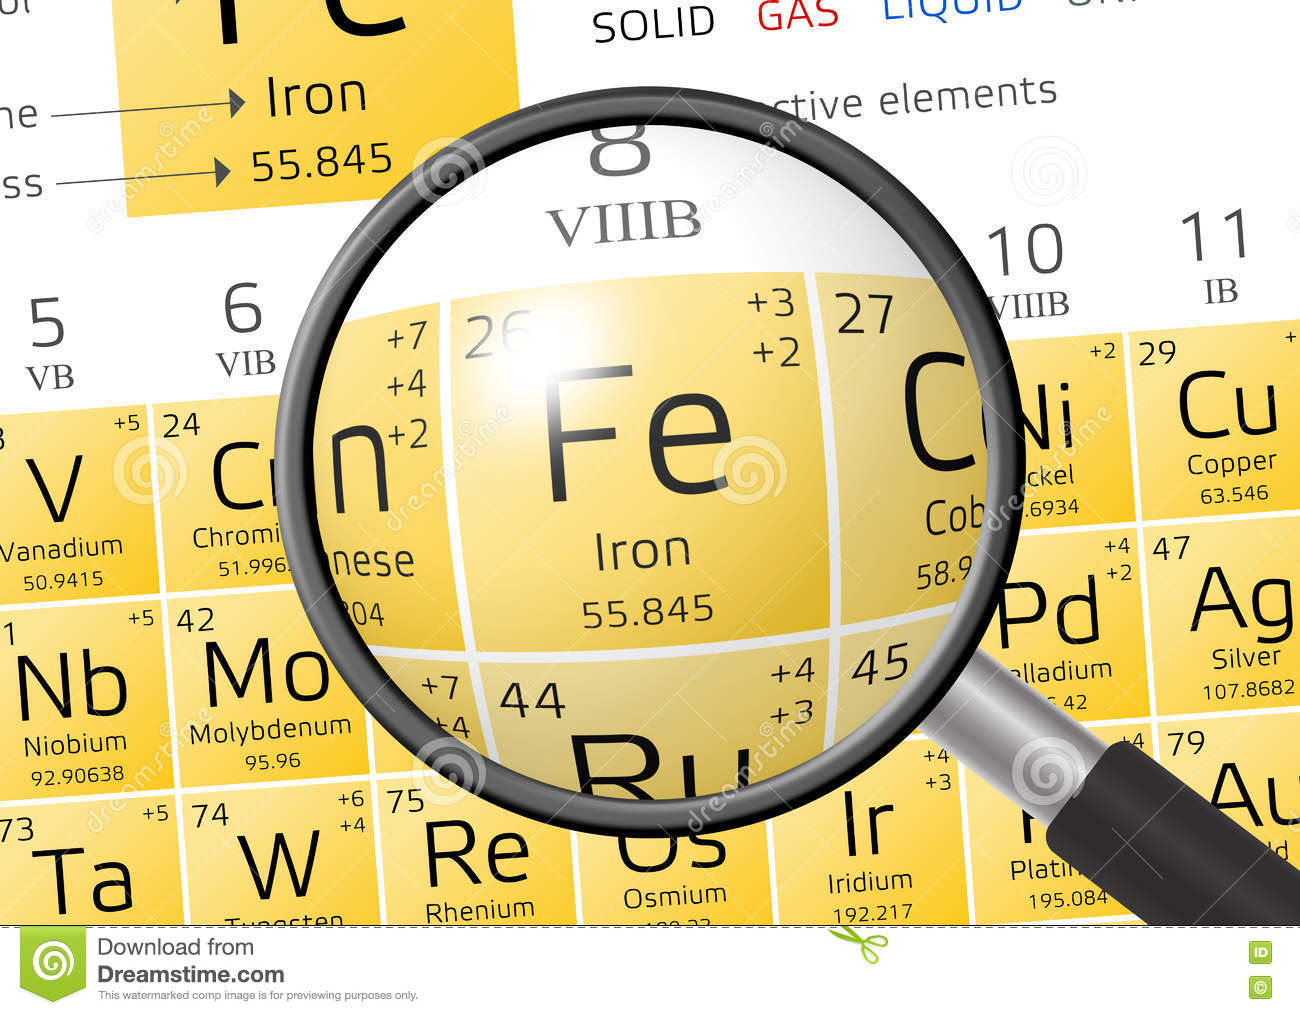 Element of ferrum or iron with magnifying glass stock illustration royalty free illustration download element of ferrum or iron gamestrikefo Choice Image